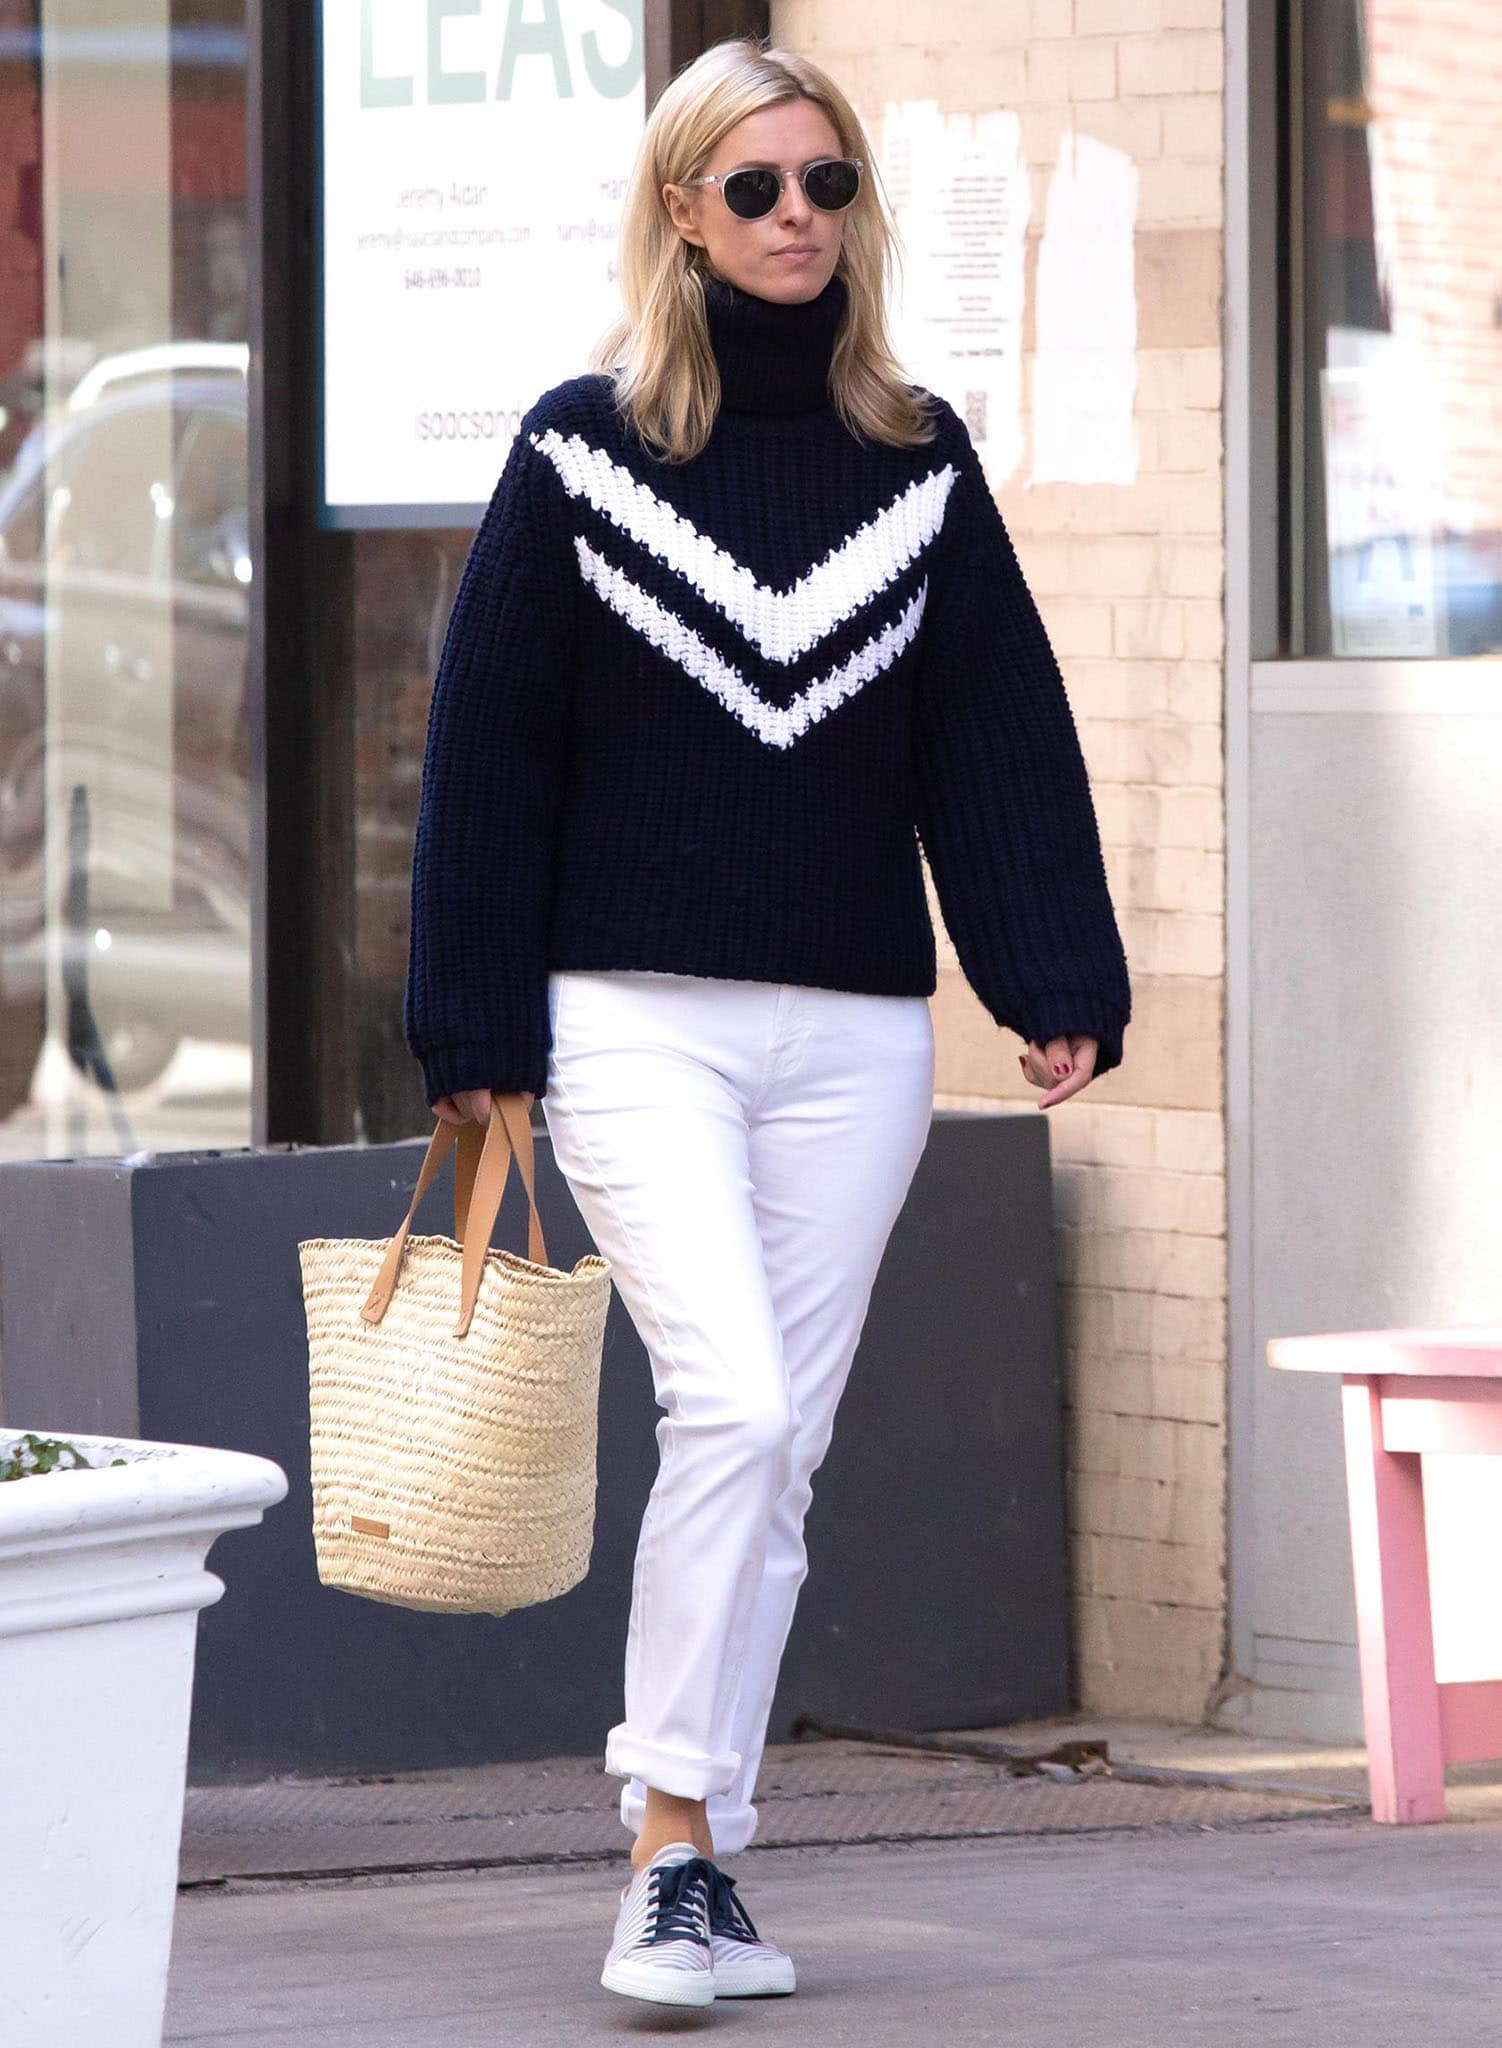 Nicky Hilton runs errands in Tory Burch chunky knit sweater and Jen7 white jeans on May 25, 2021